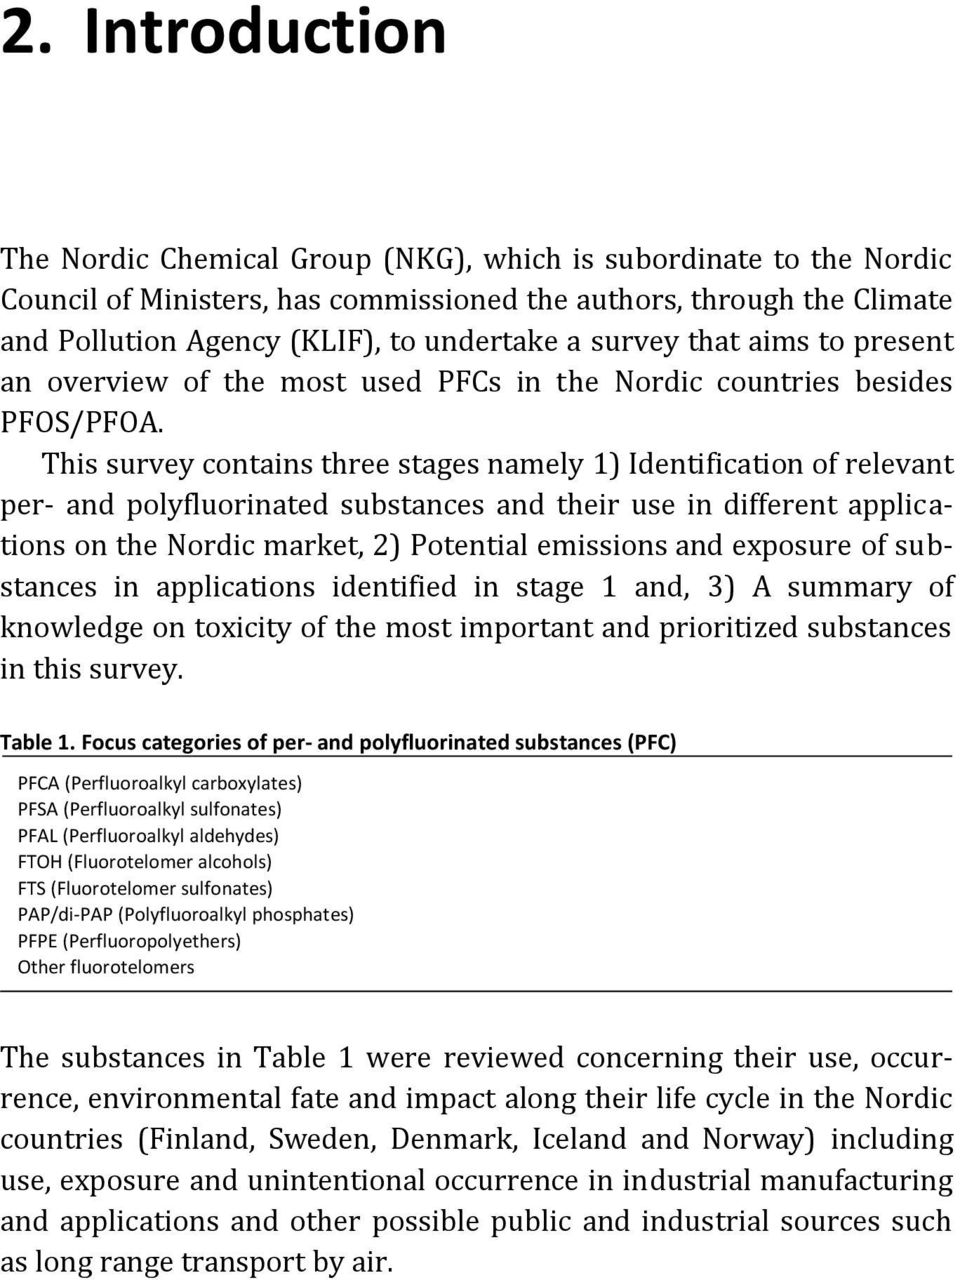 This survey contains three stages namely 1) Identification of relevant per- and polyfluorinated substances and their use in different applications on the Nordic market, 2) Potential emissions and